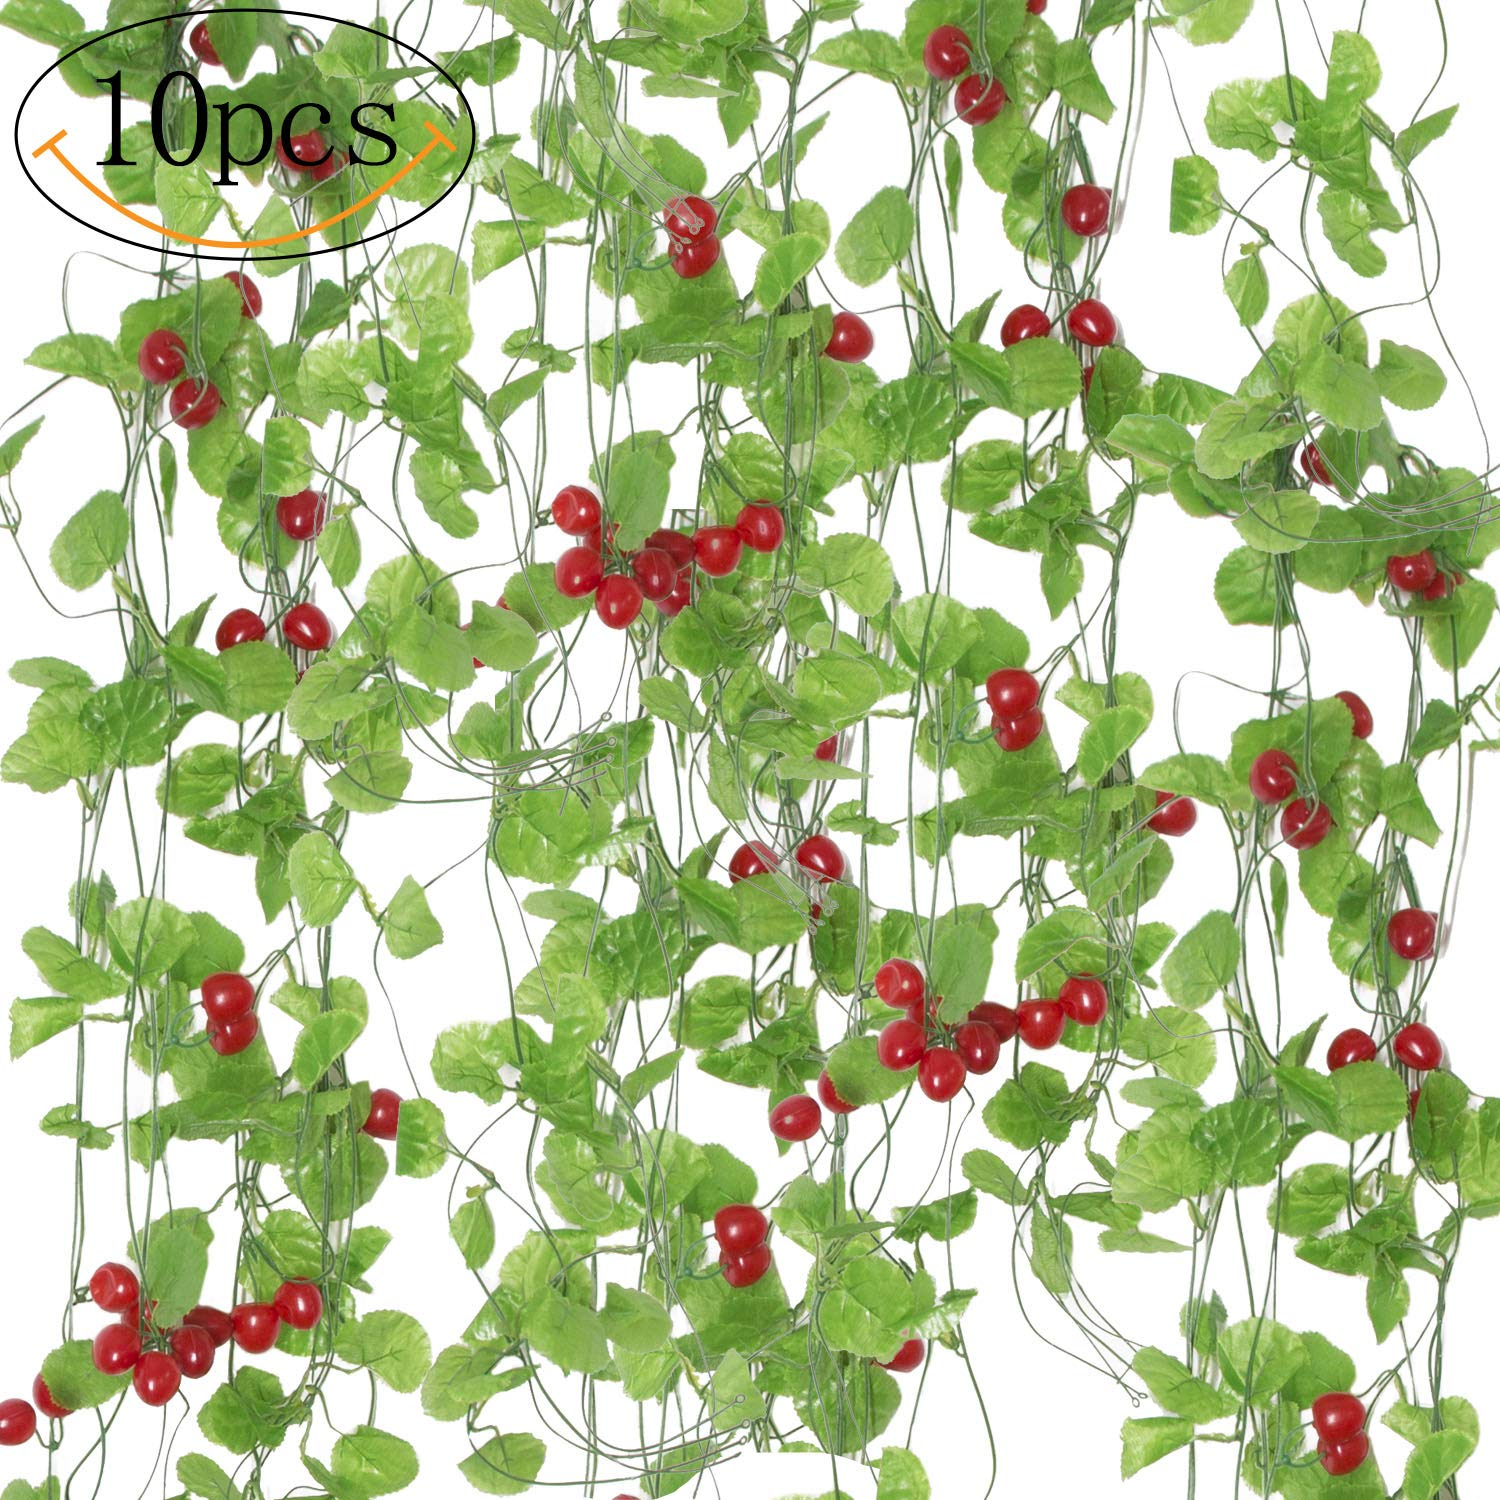 SPECOOL 10 Strands (80 Feet) Artificial Sea bream Green Leaves and Strawberry Fake Hanging Vine Plant for Wedding Party Garden Wall Decoration (Red leaves)